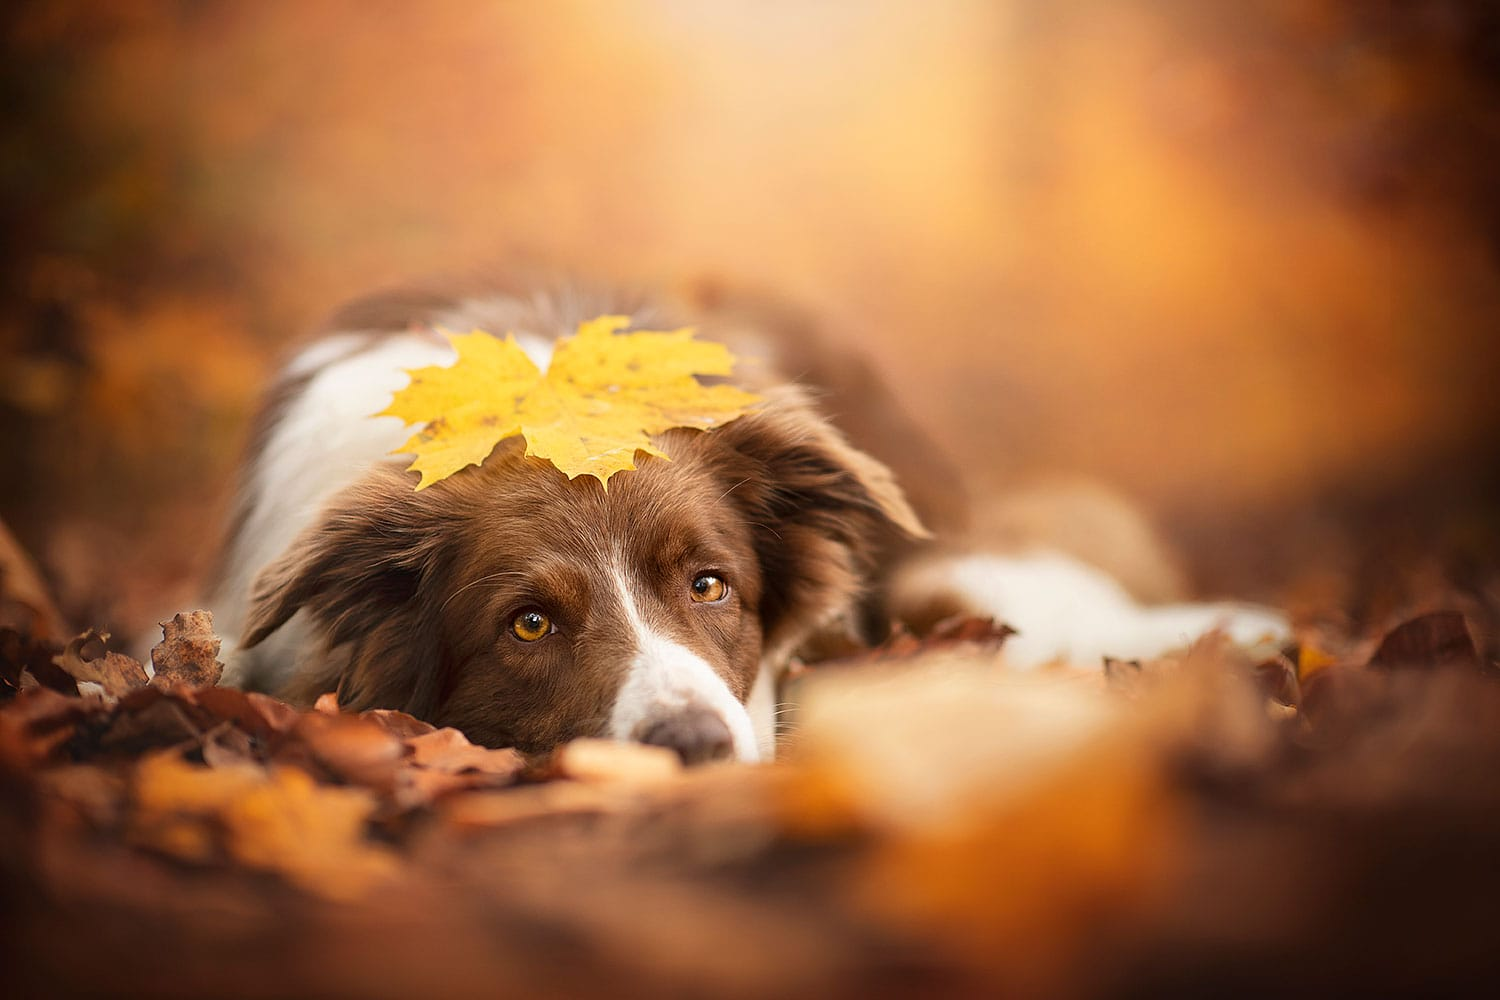 Border Collie mit Blatt am Kopf im Herbst_Workshop Coaching Bildbearbeitung Photoshop